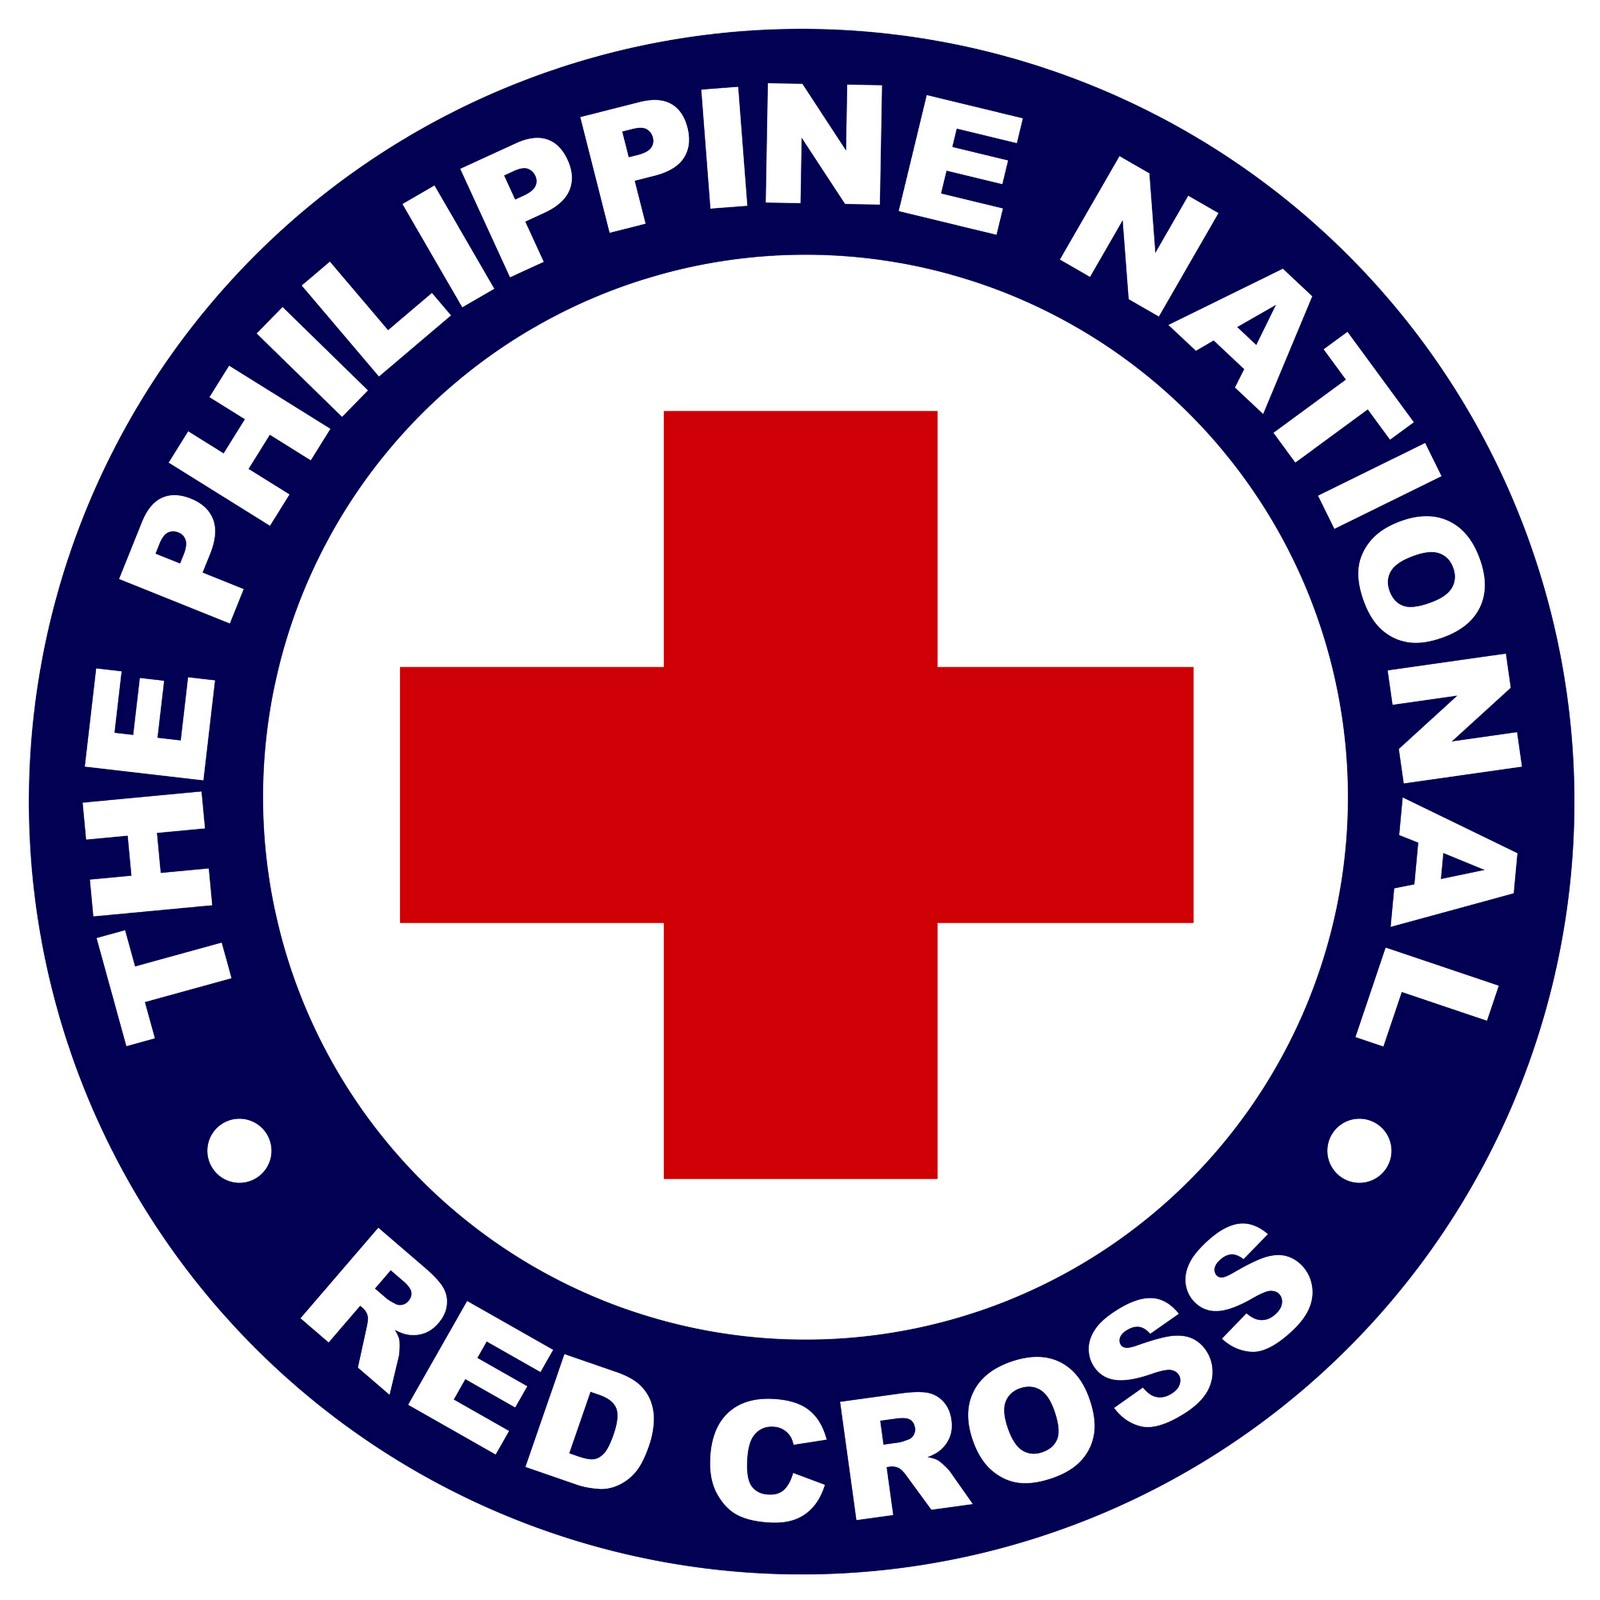 Filephilippine National Red Cross Logo Obsoleteg Wikimedia